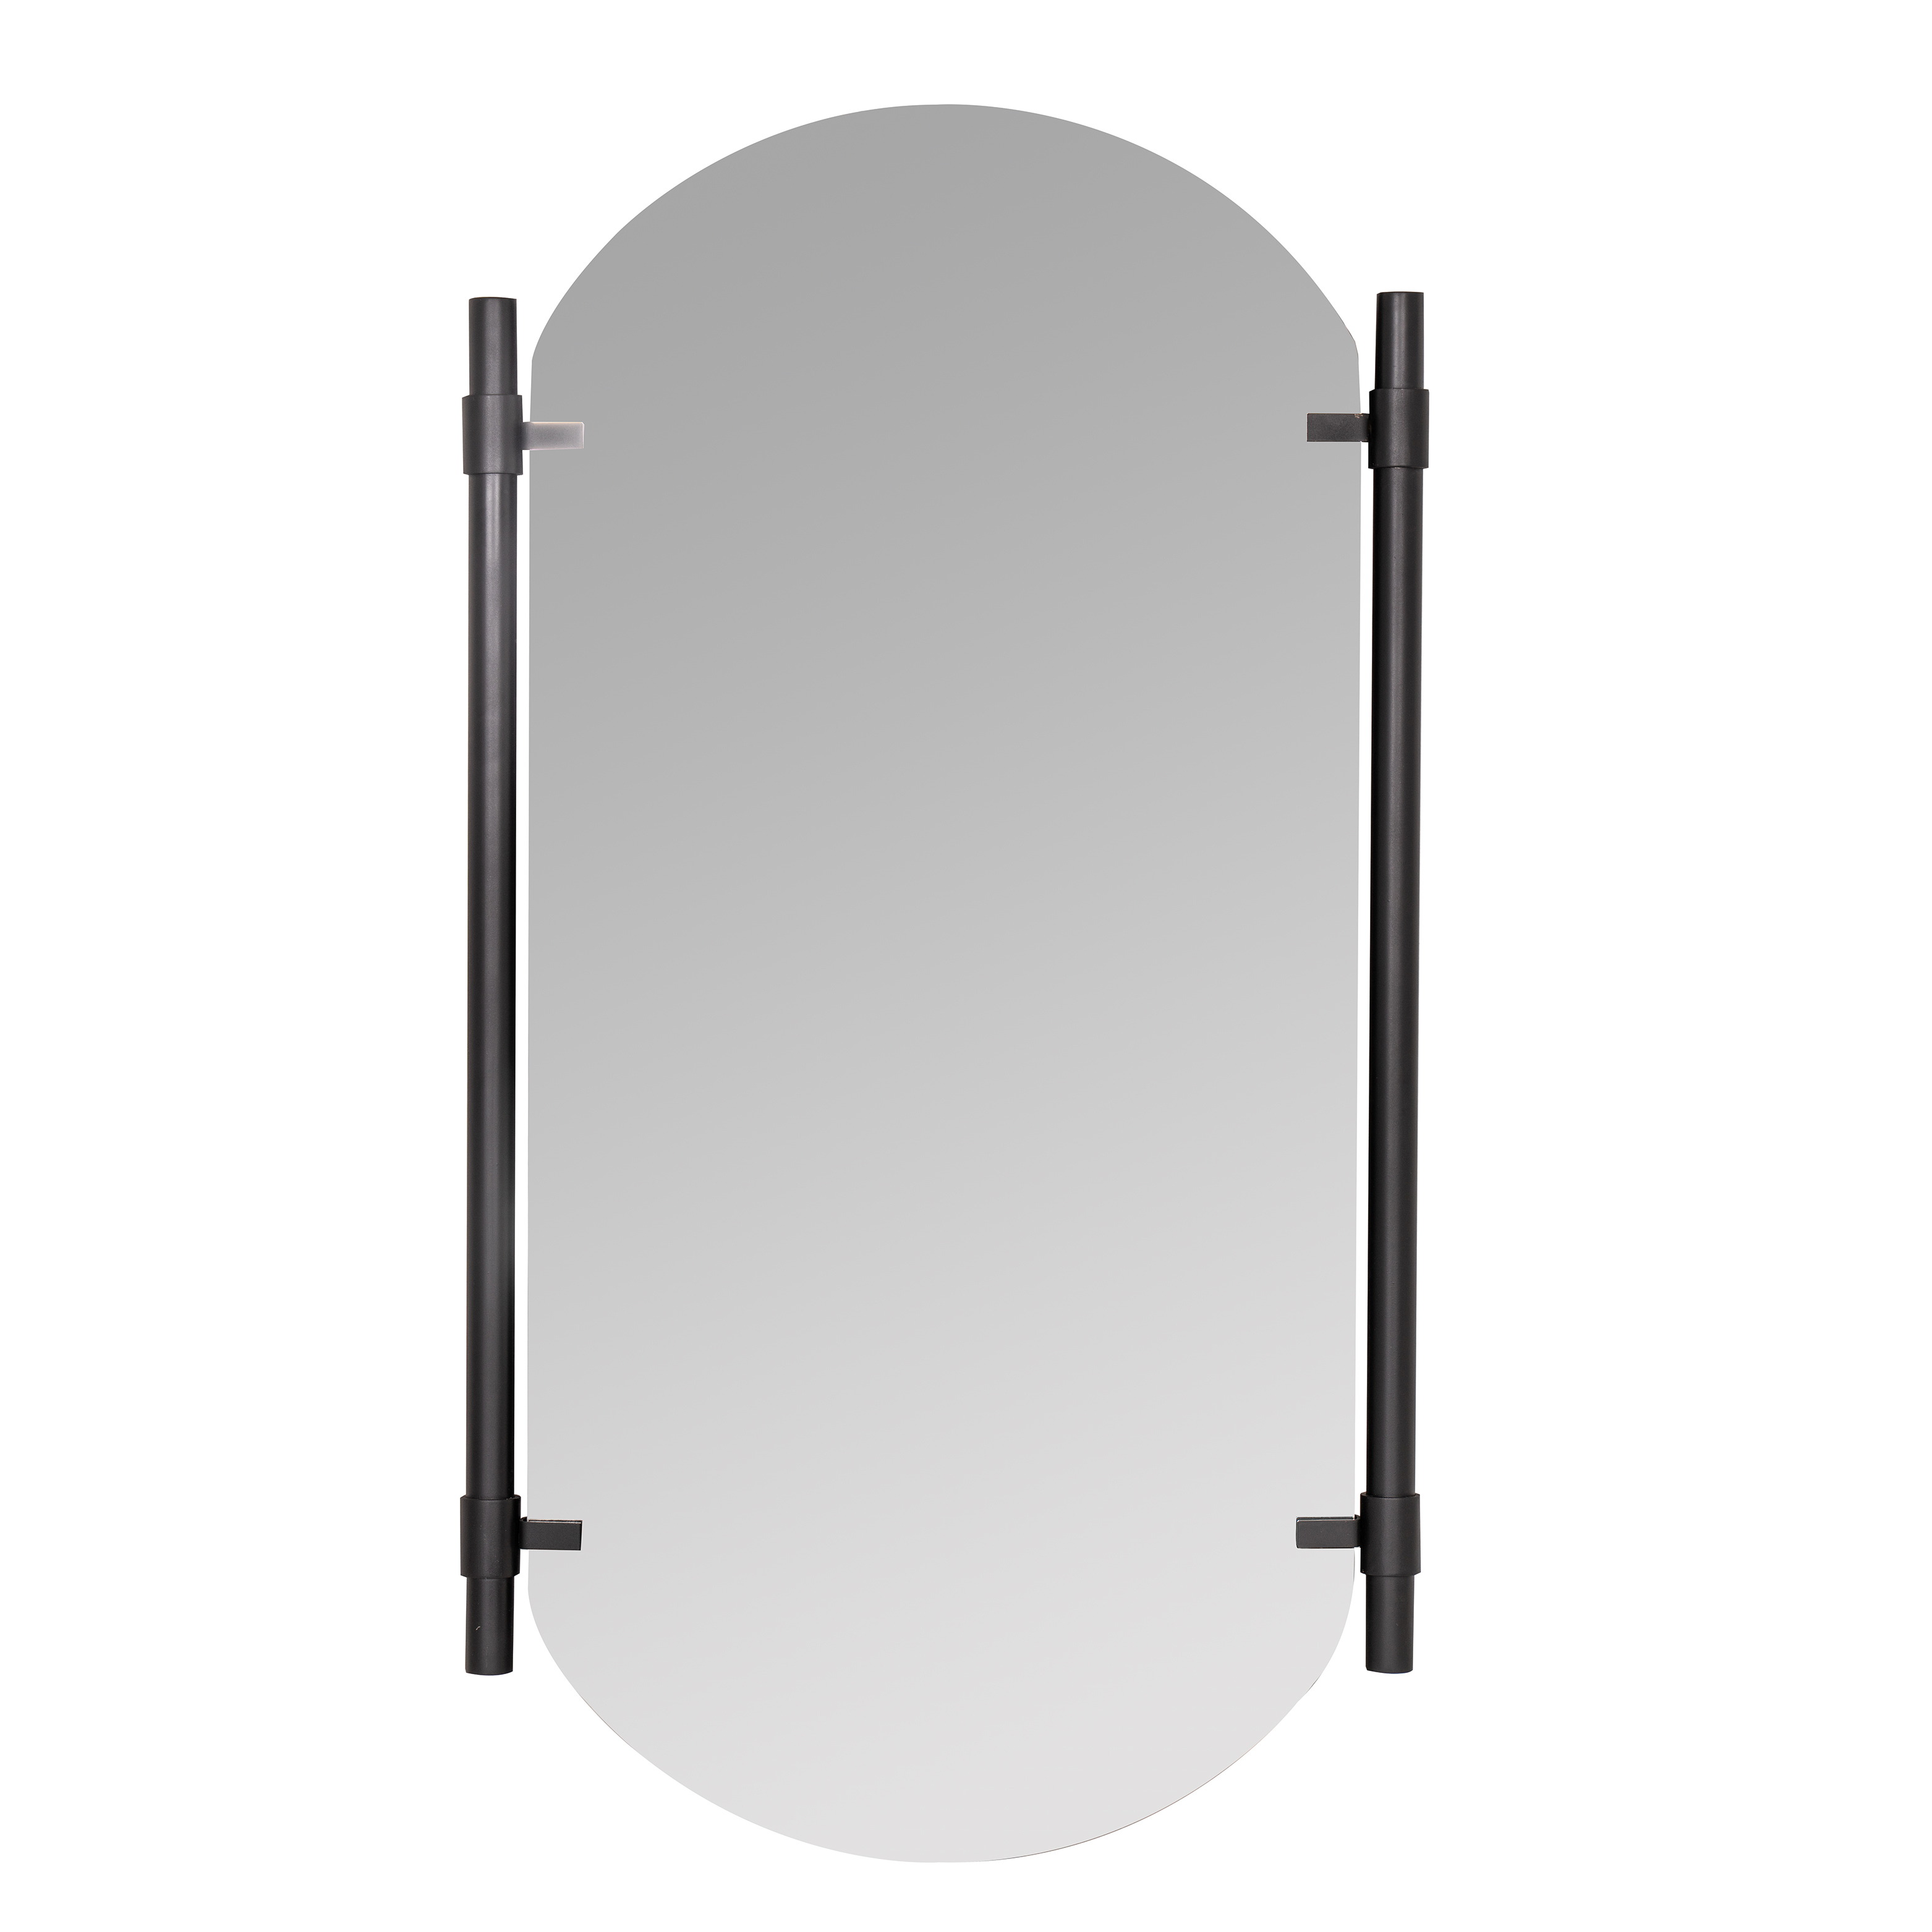 Vertical Black Phoebe Wall Mirror in Arch Vertical Wall Mirrors (Image 27 of 30)